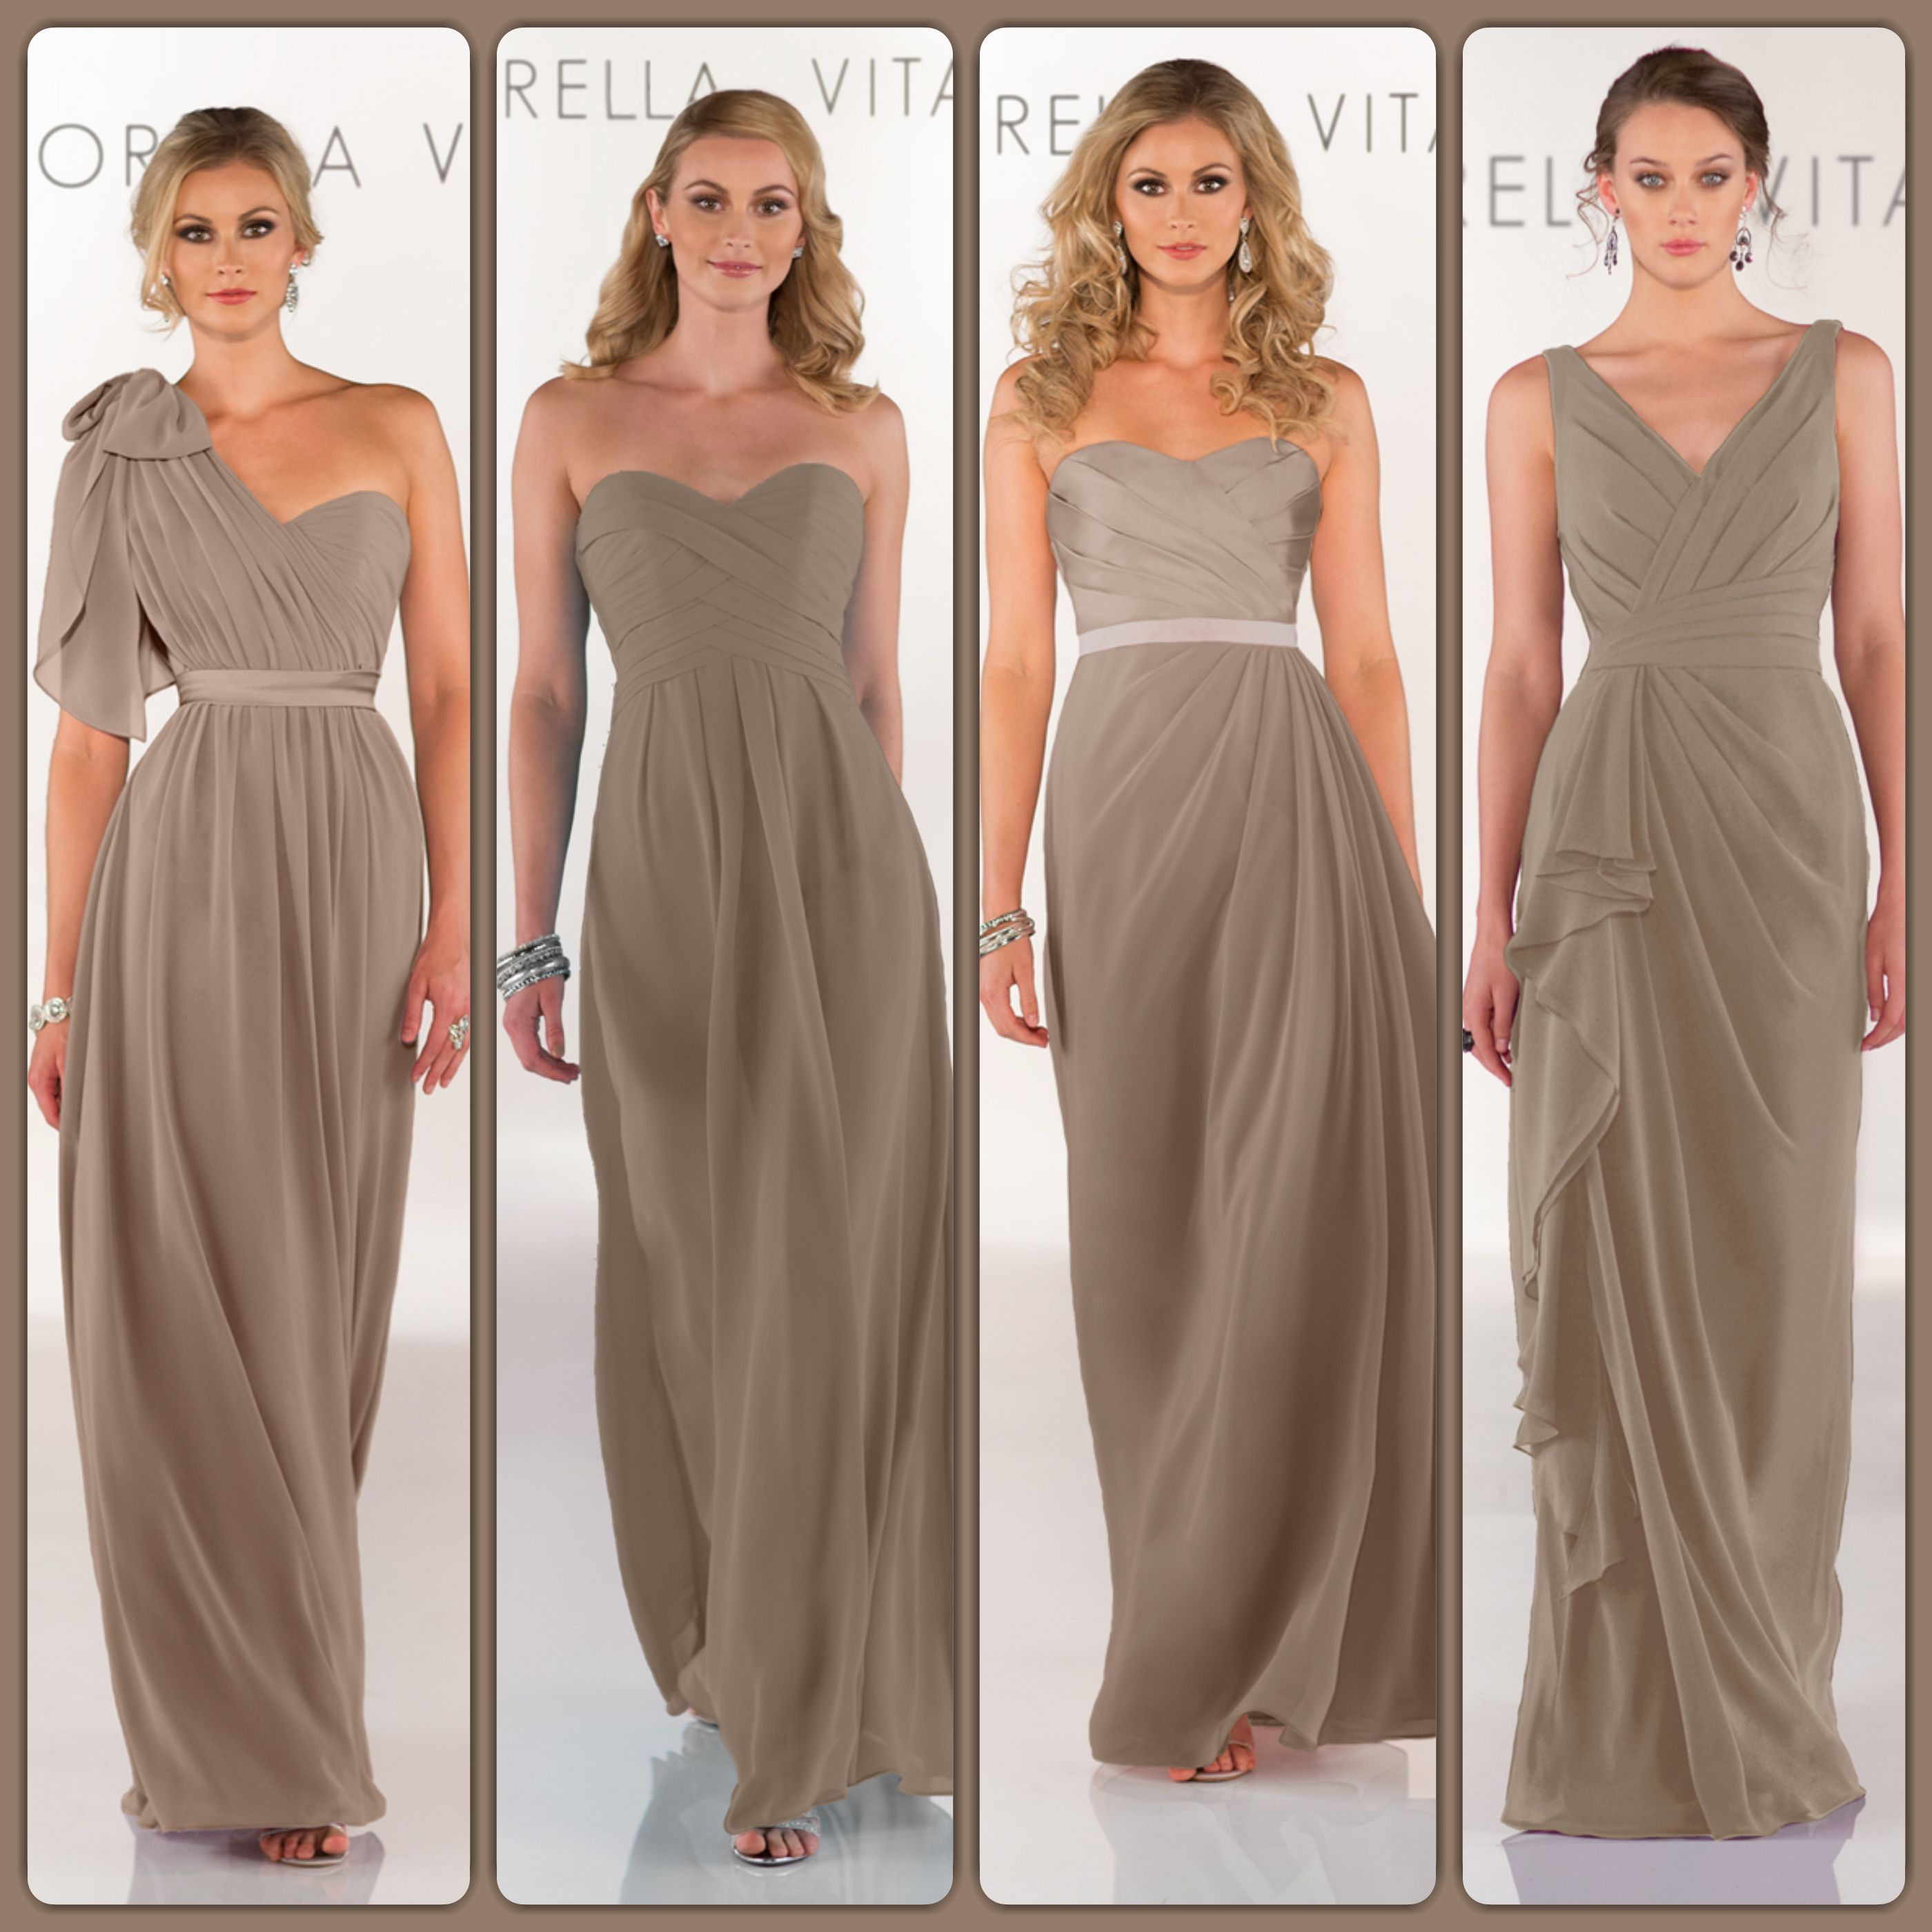 Sorella vita bridesmaid dresses in cinnamon bridalgallerysf bridesmaid dresses gallery sorella vita ombrellifo Images